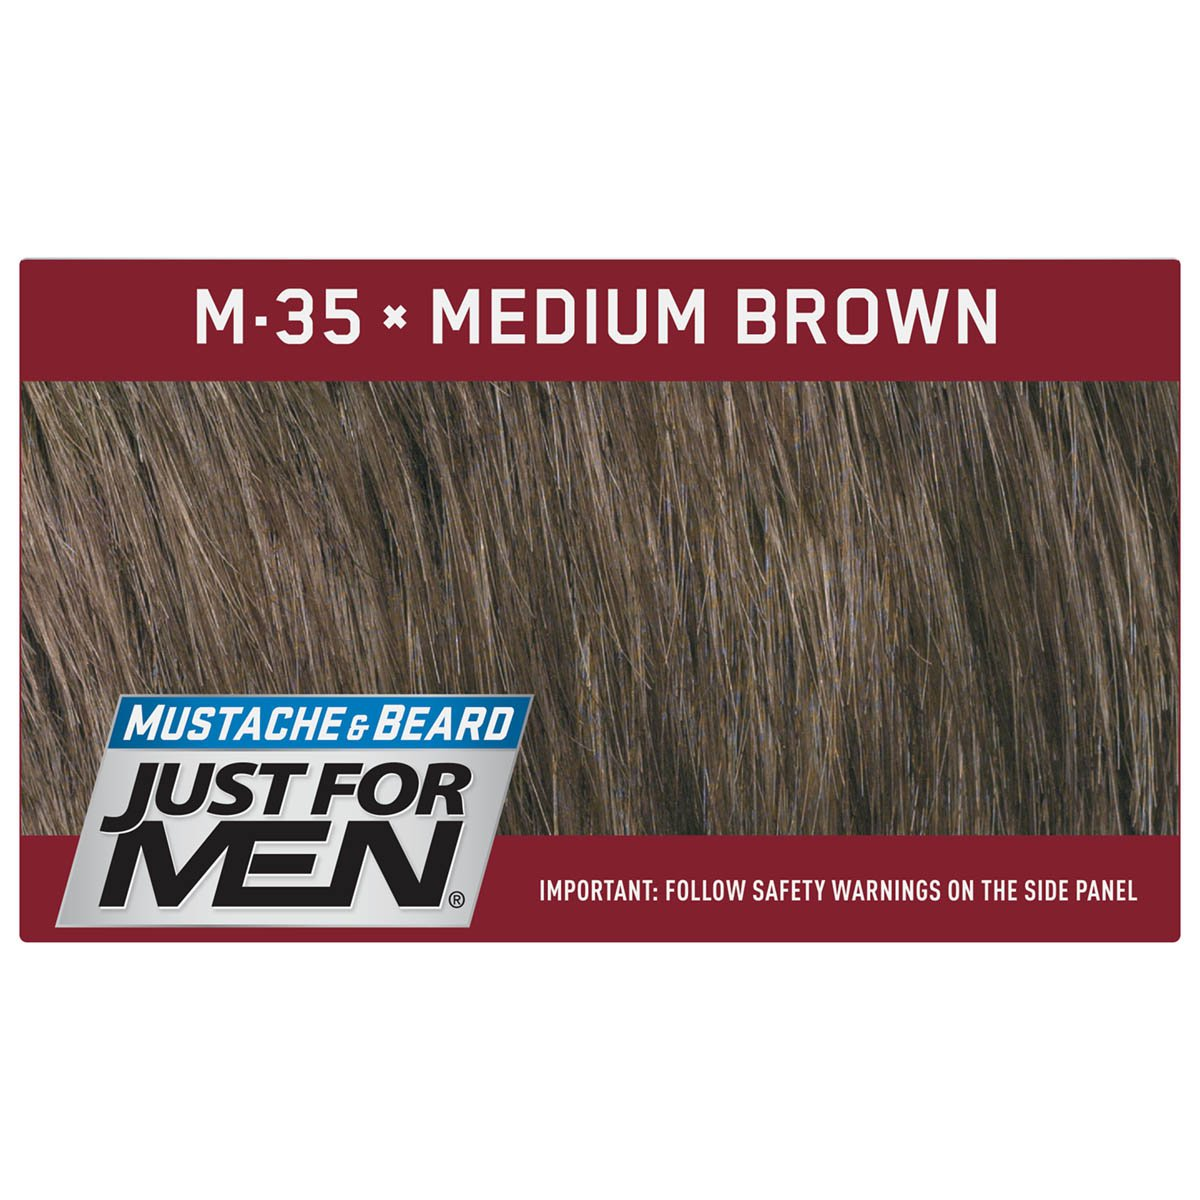 Just For Men Mustache & Beard Brush-In Color Gel, Medium Brown (Pack of 3) by Just for Men (Image #6)